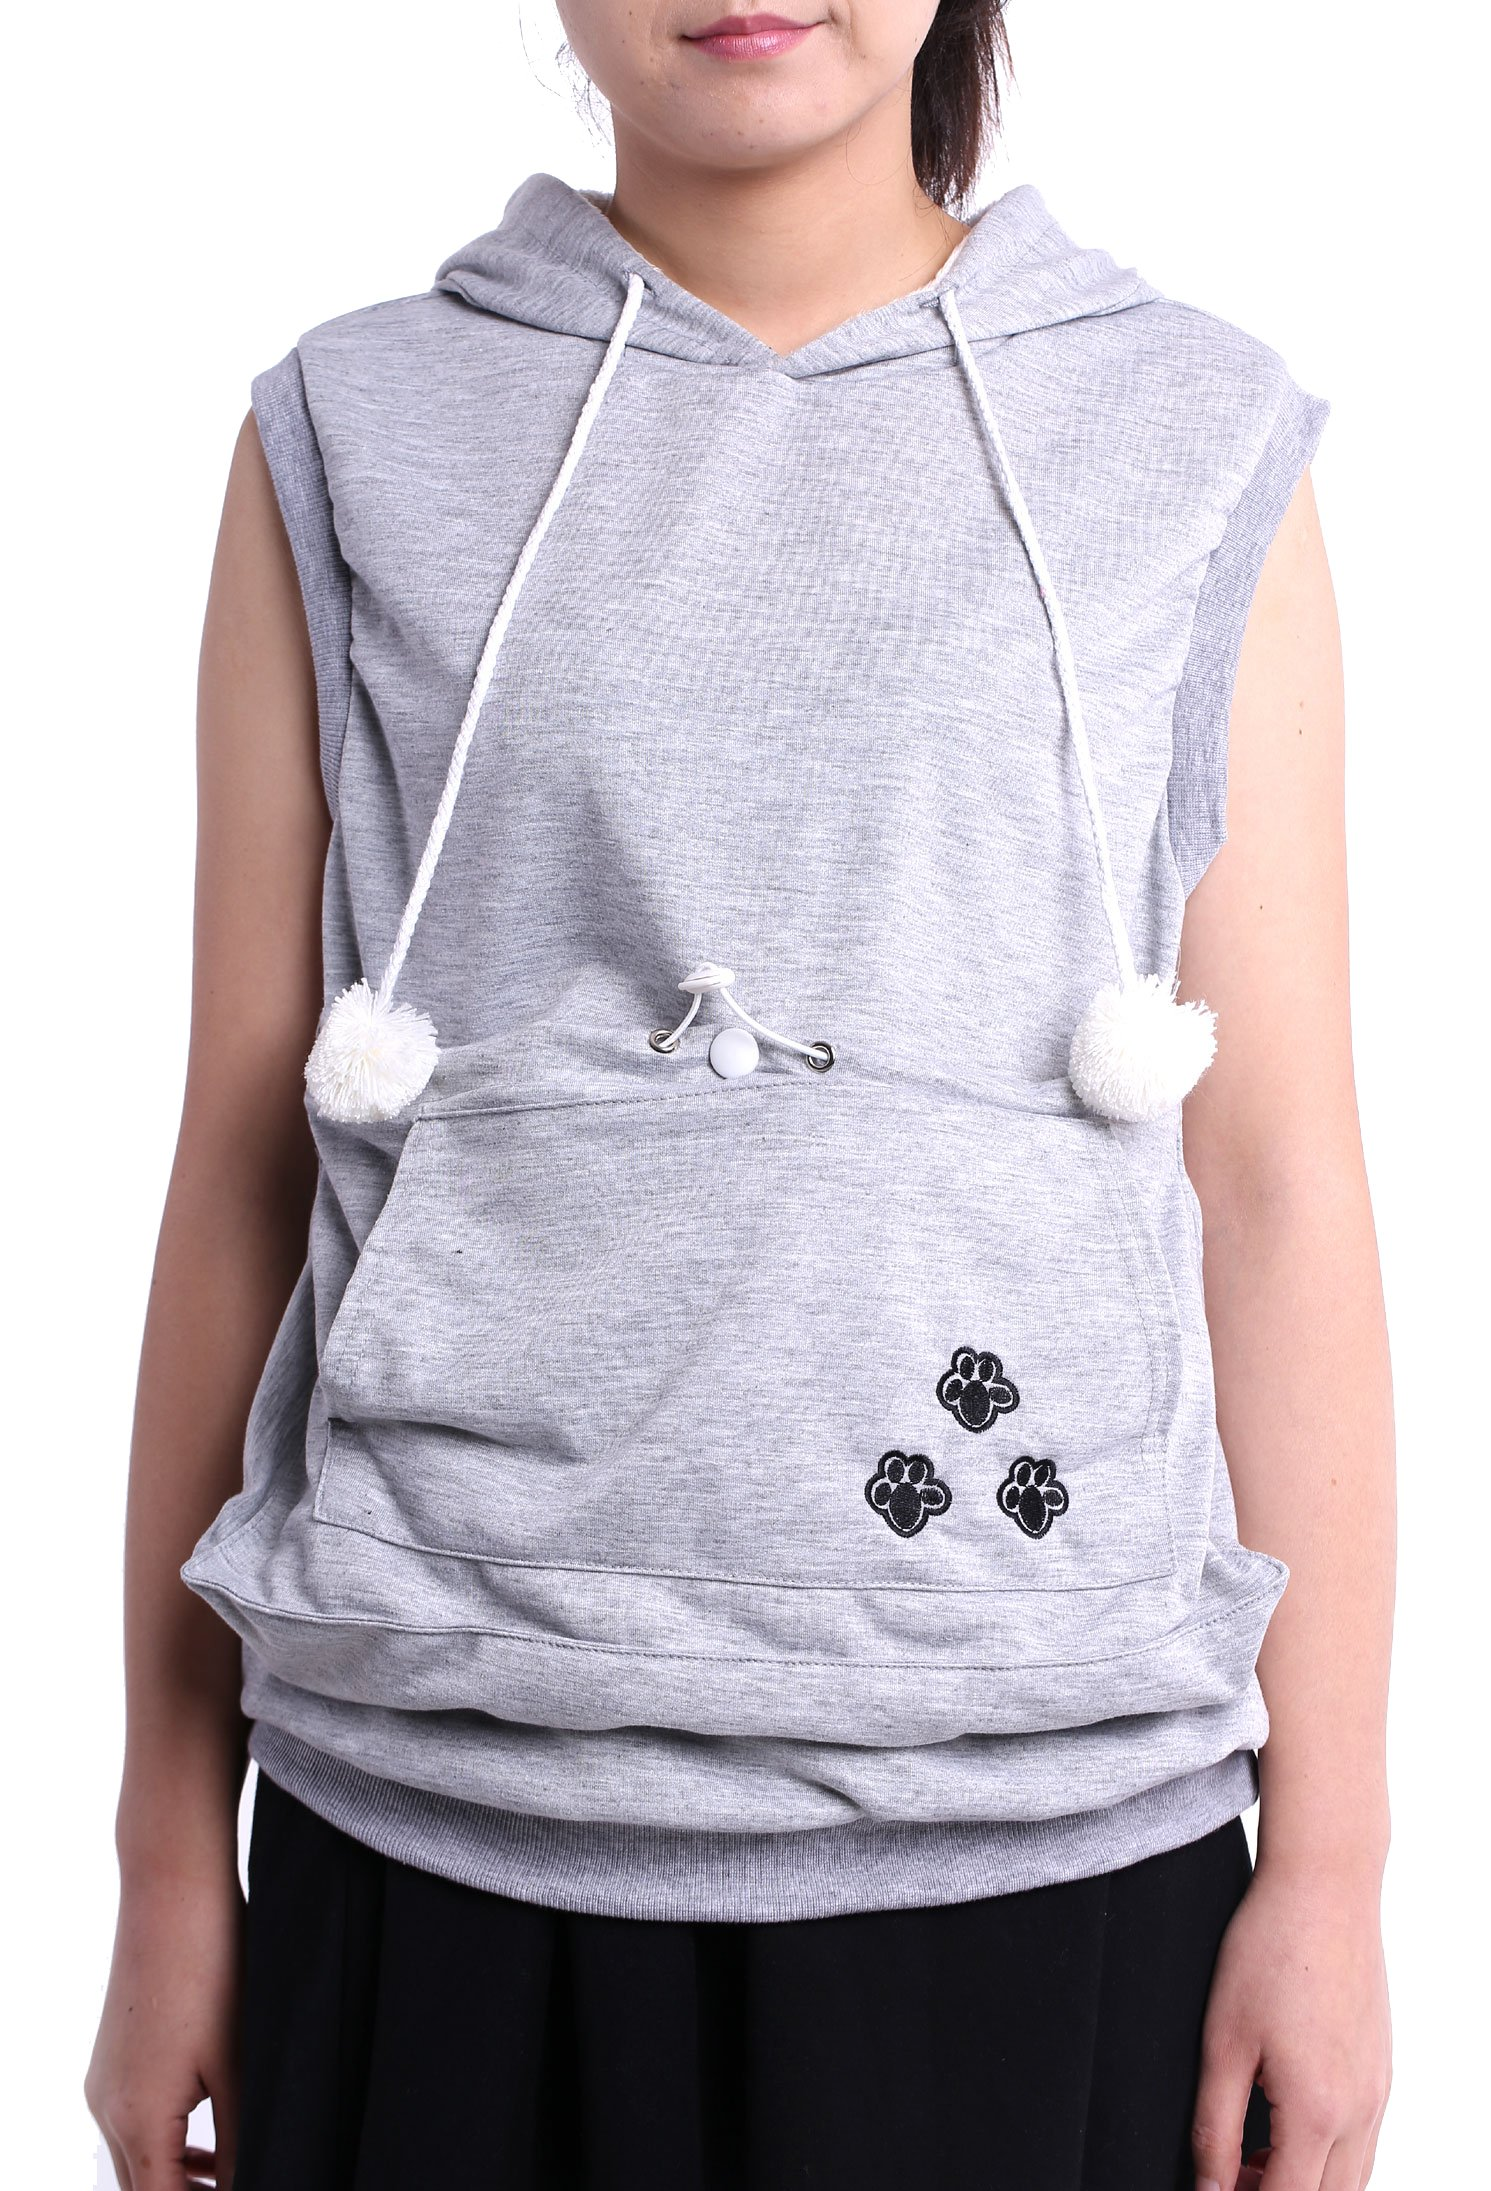 Sleeveless Hoodie Pet Holder Cat Dog Kangaroo Pouch Carriers Pullover Grey S